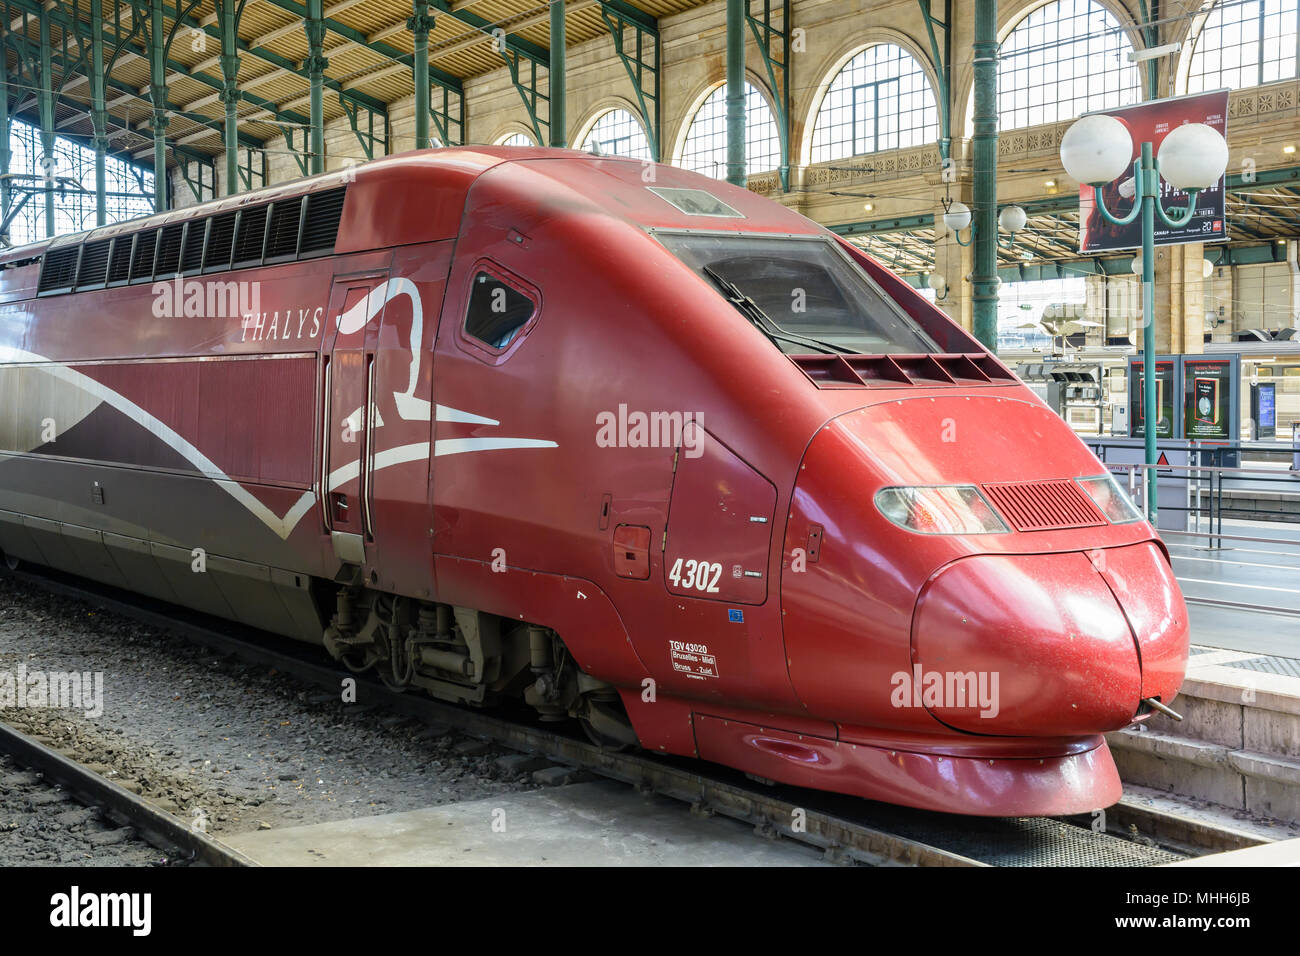 Locomotive of a Thalys high-speed train built by Alstom and run by european consortium Thalys International, stationed in Paris Gare du Nord station. - Stock Image